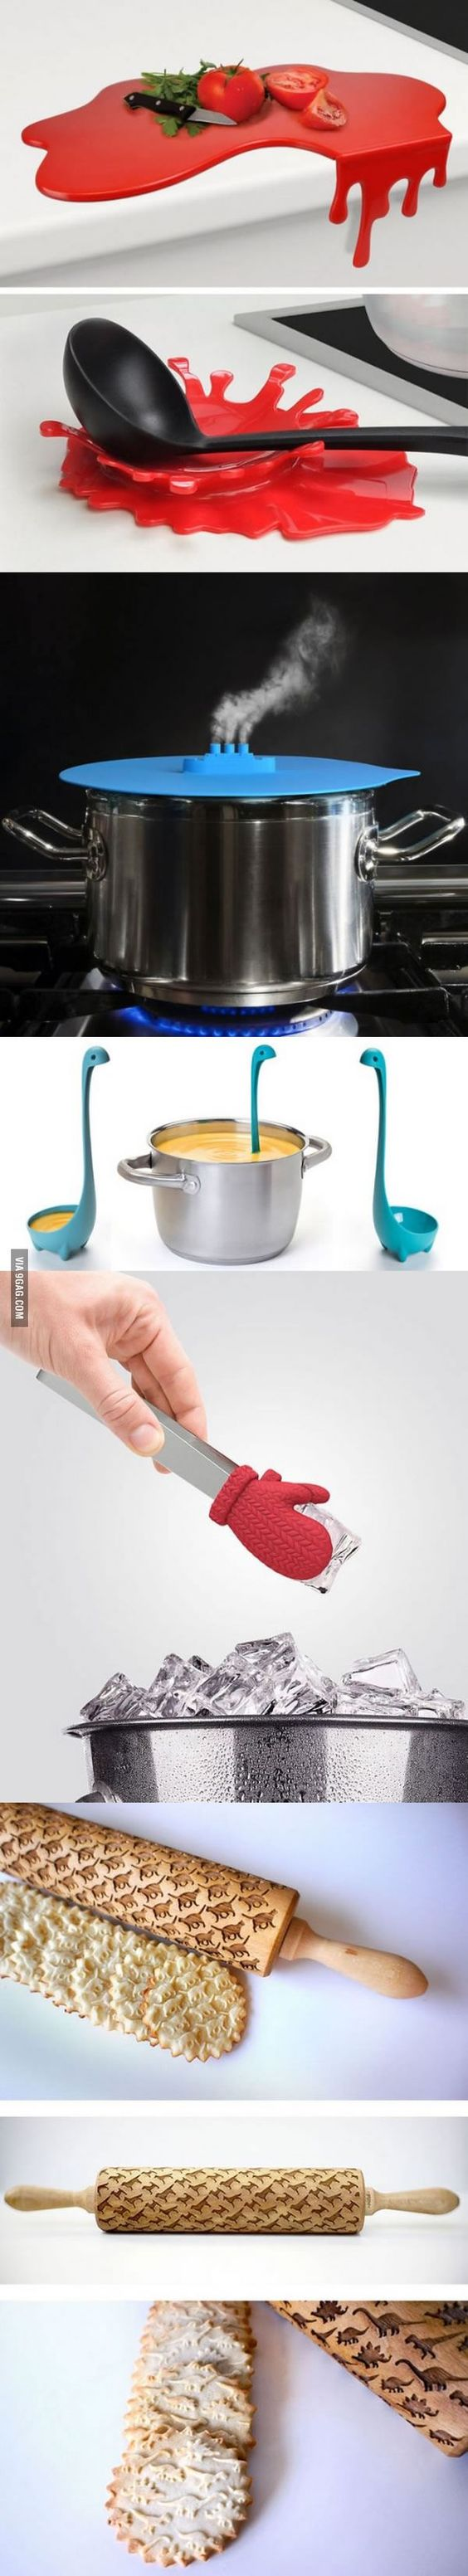 Creative kitchen gadgets kitchen gadgets gadgets and Awesome kitchen gadgets